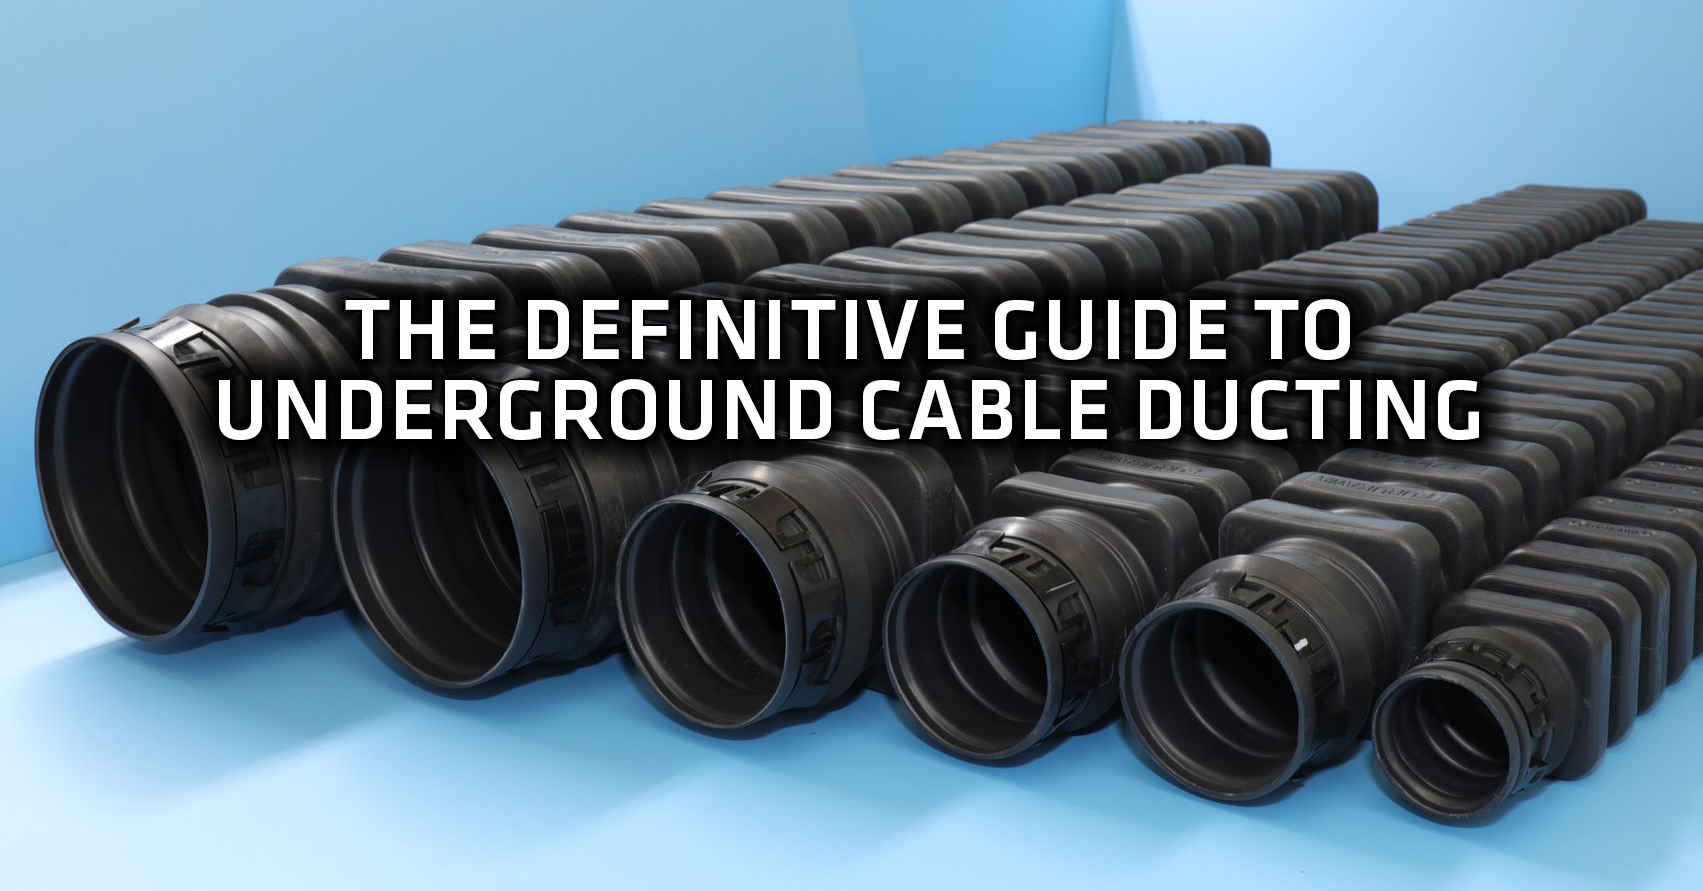 The Definitive Guide to underground cable ducting